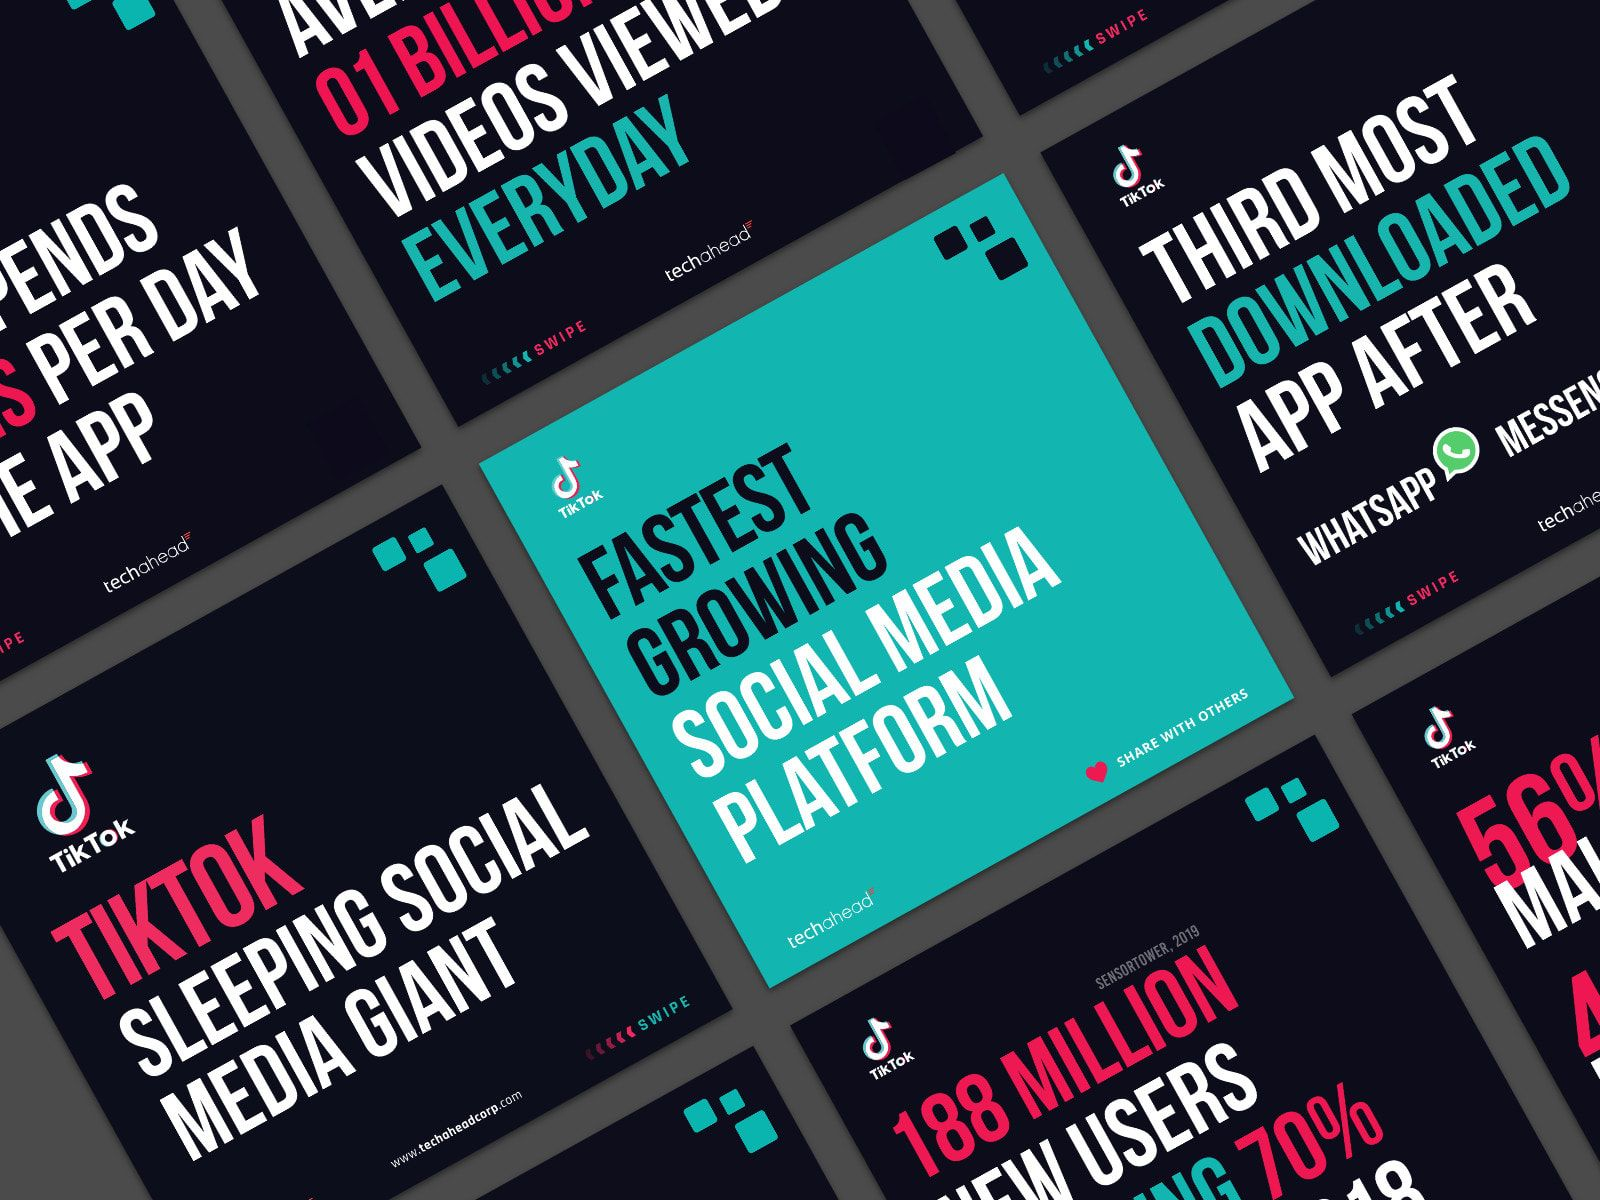 We Will Grow And Promote Your Tiktok Account Organically Social Media Marketing Services Social Media Marketing Digital Marketing Social Media